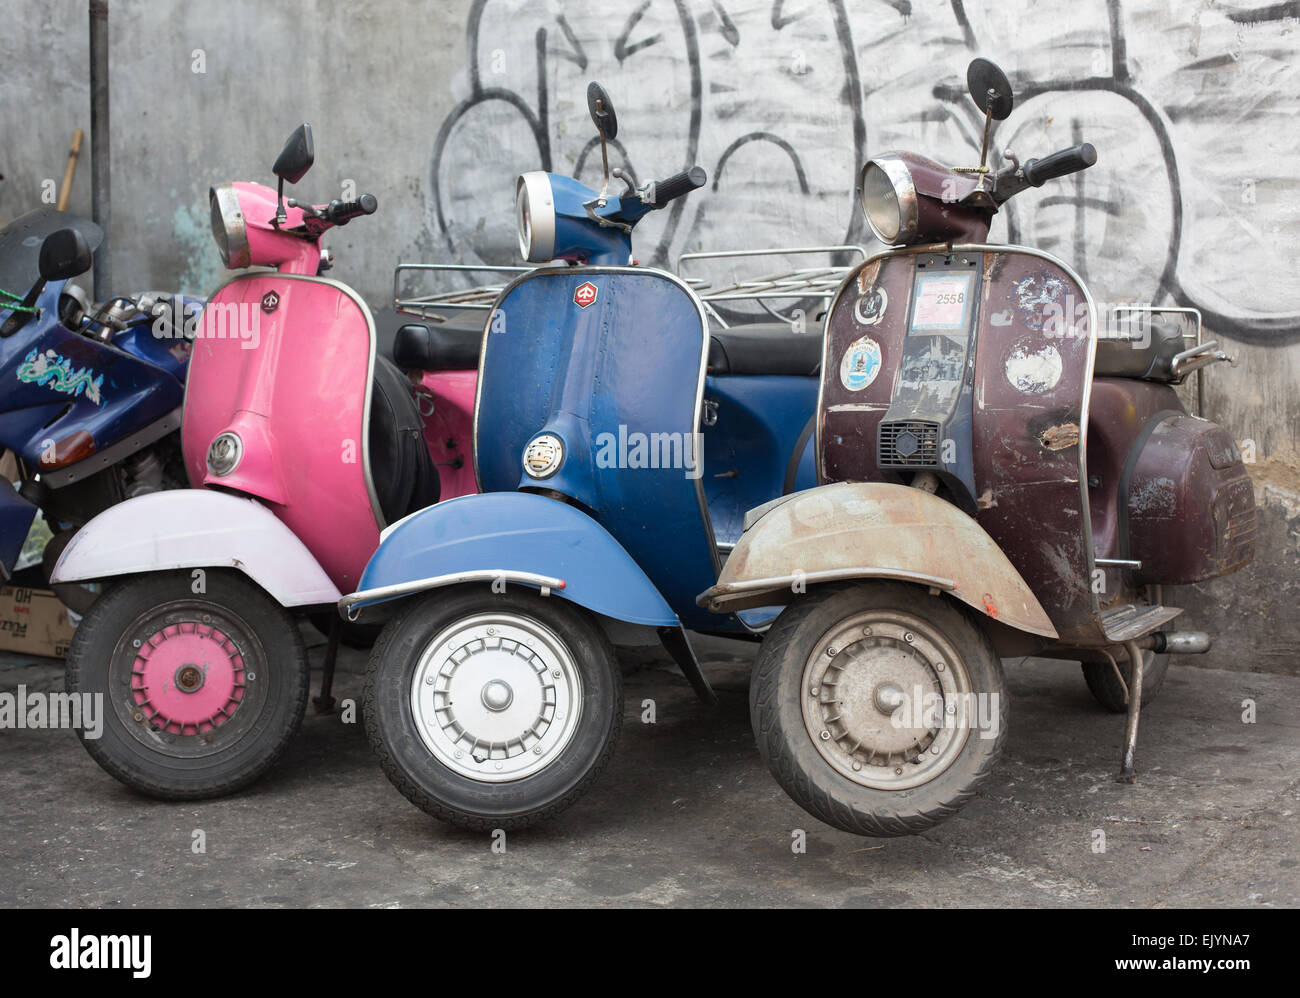 Three vintage vespa's of various colours lined up in front of a